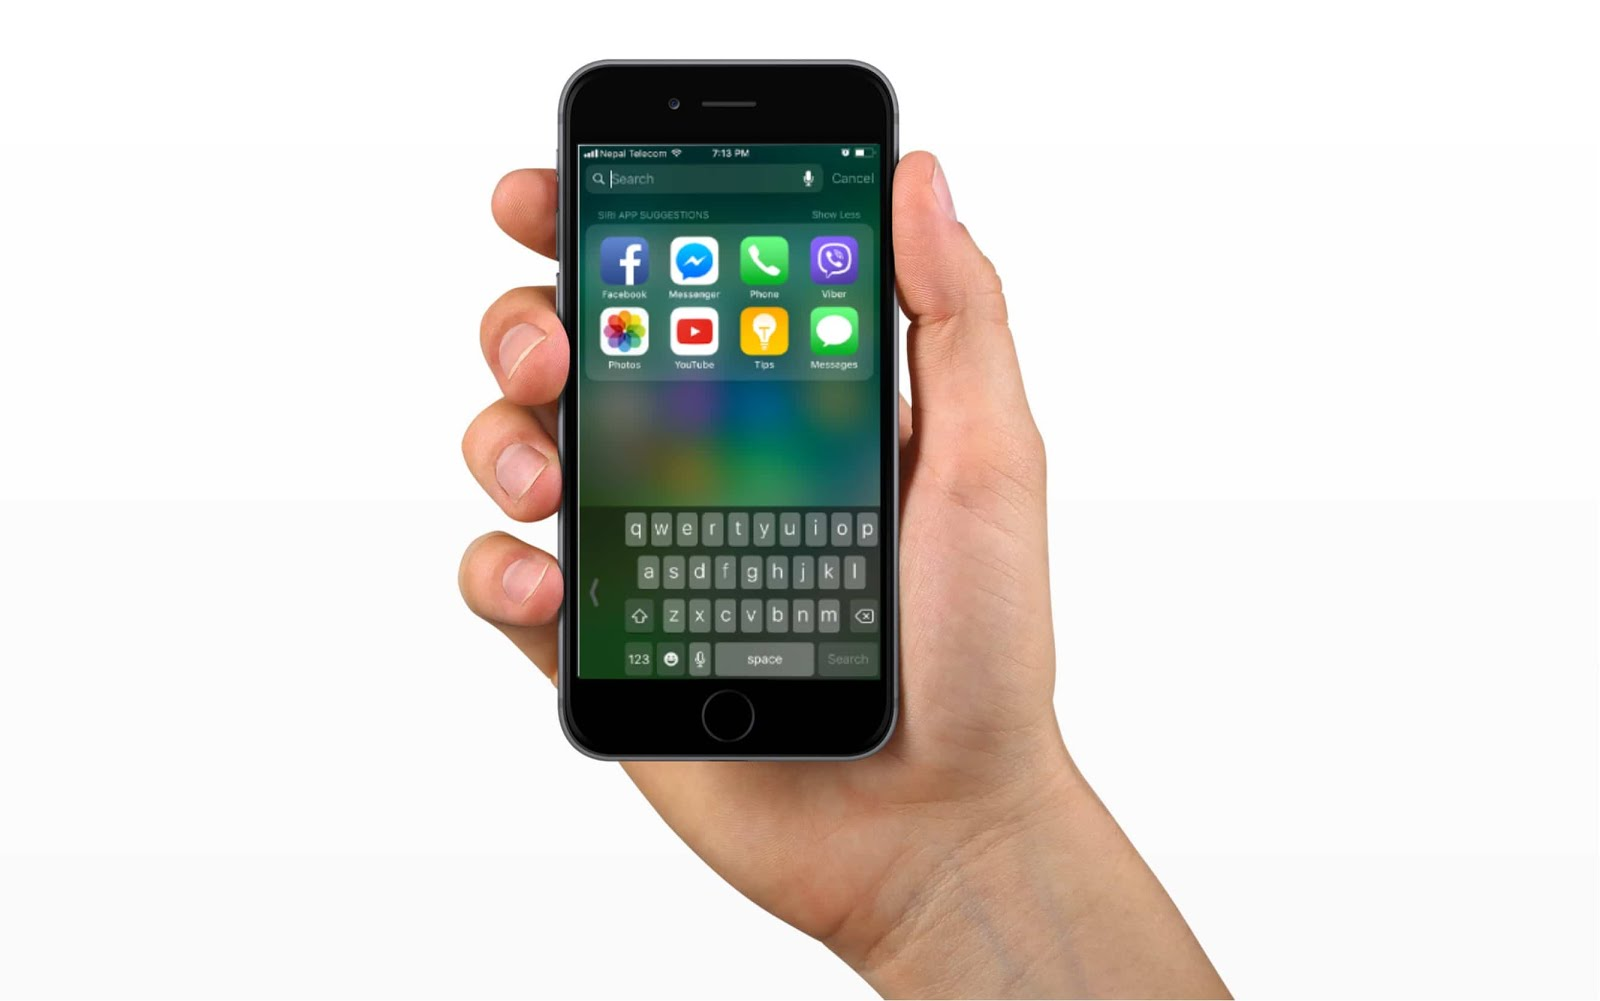 iOS 11 that allows you to type on keyboard using only one hand. Here's how to use your iPhone keyboard with One hand in iOS 11.